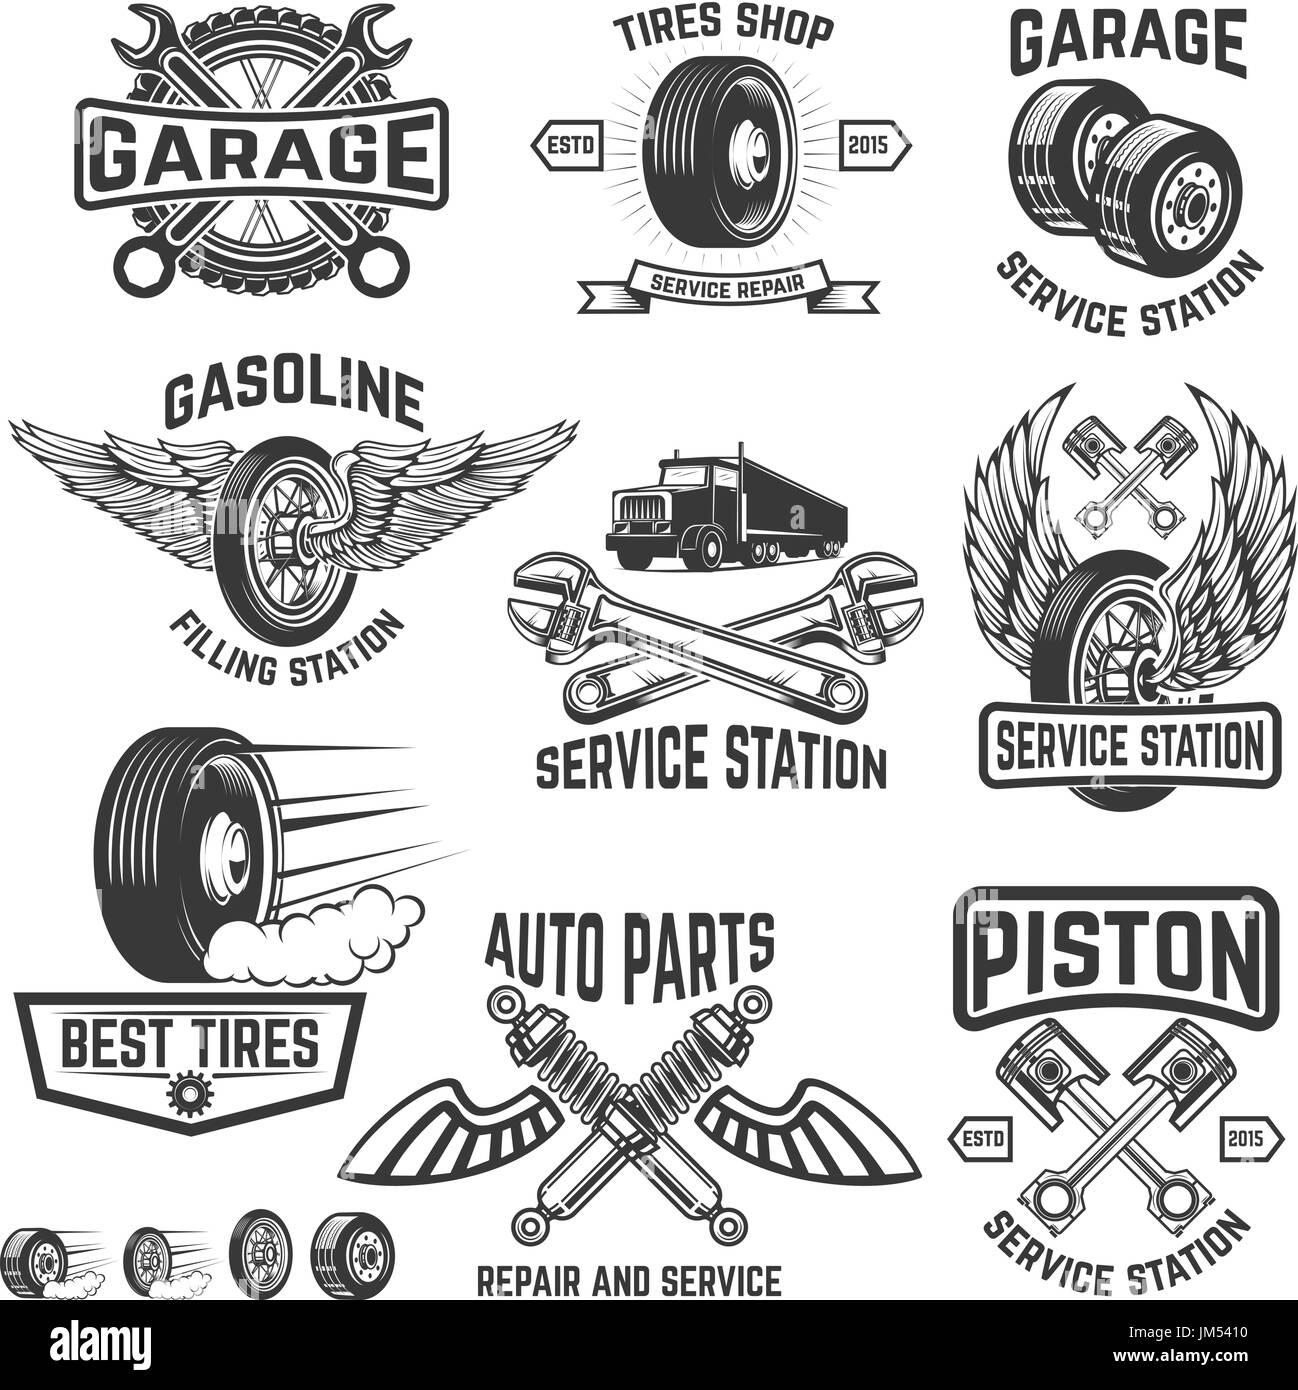 Garage Service Station Auto Parts Store Filling Badges Design Element For Logo Label Sign Vector Illustration